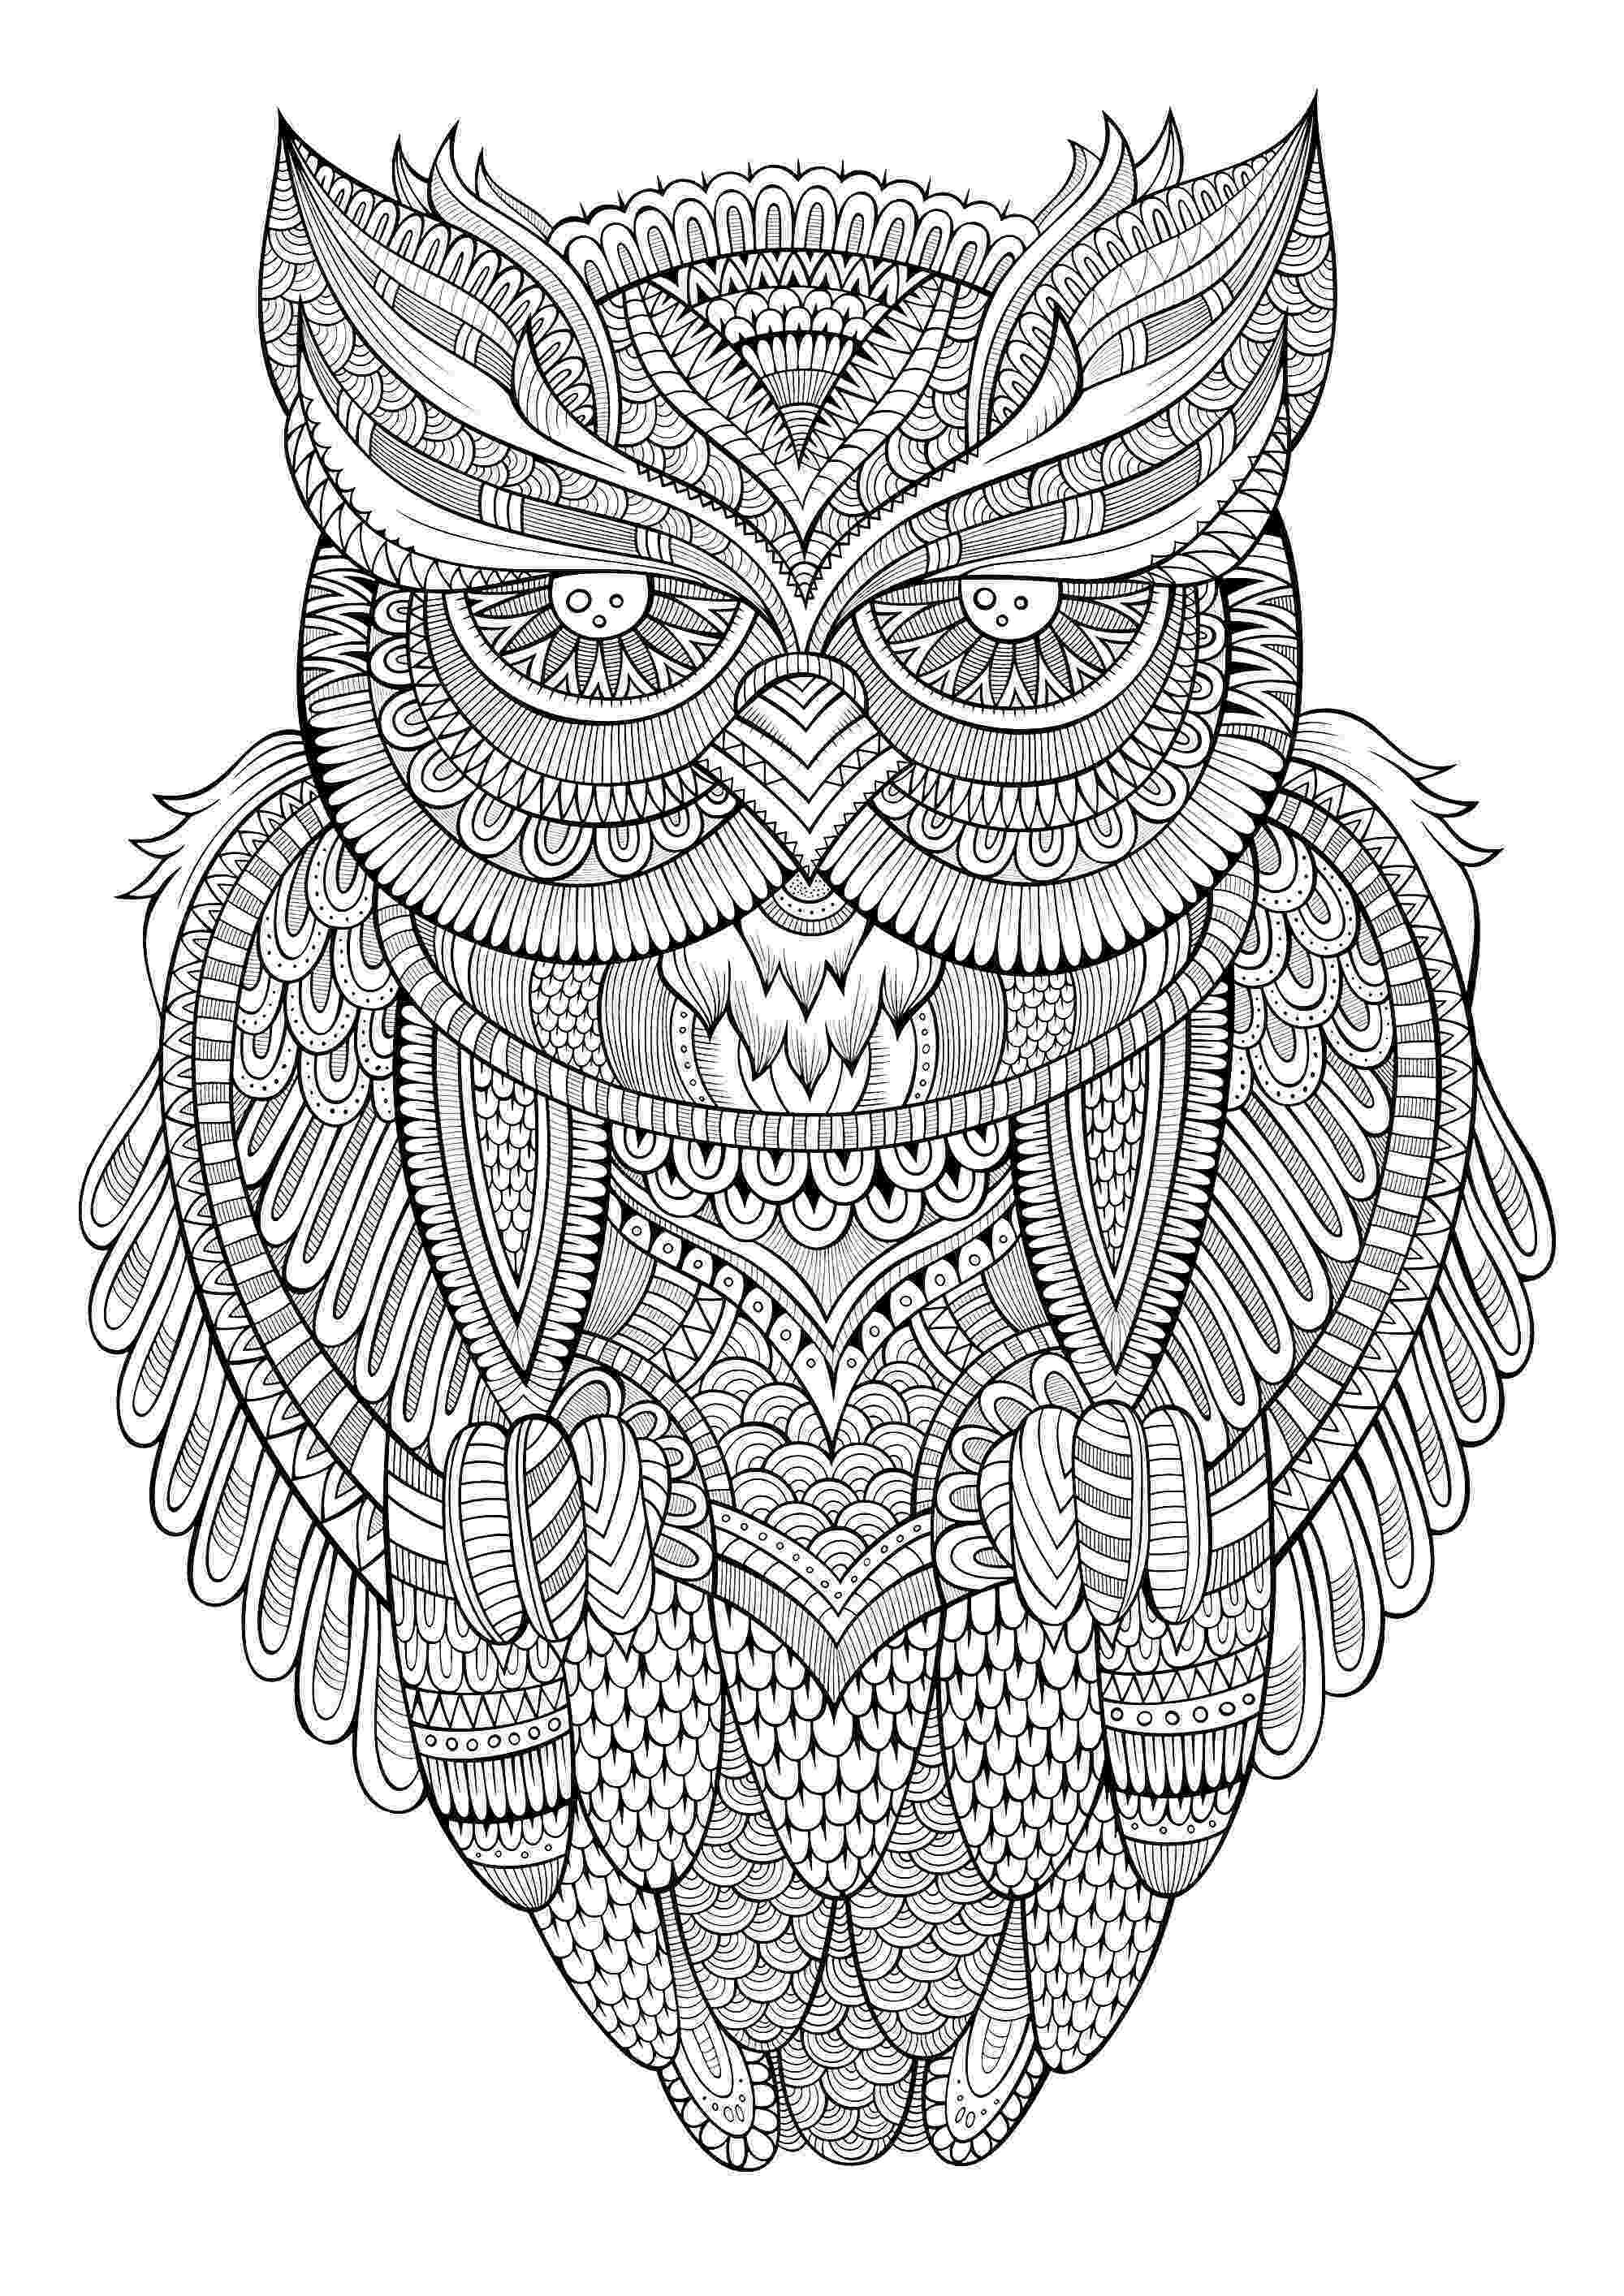 colouring pictures of owls 1000 images about owl on pinterest coloring baby owls pictures owls colouring of